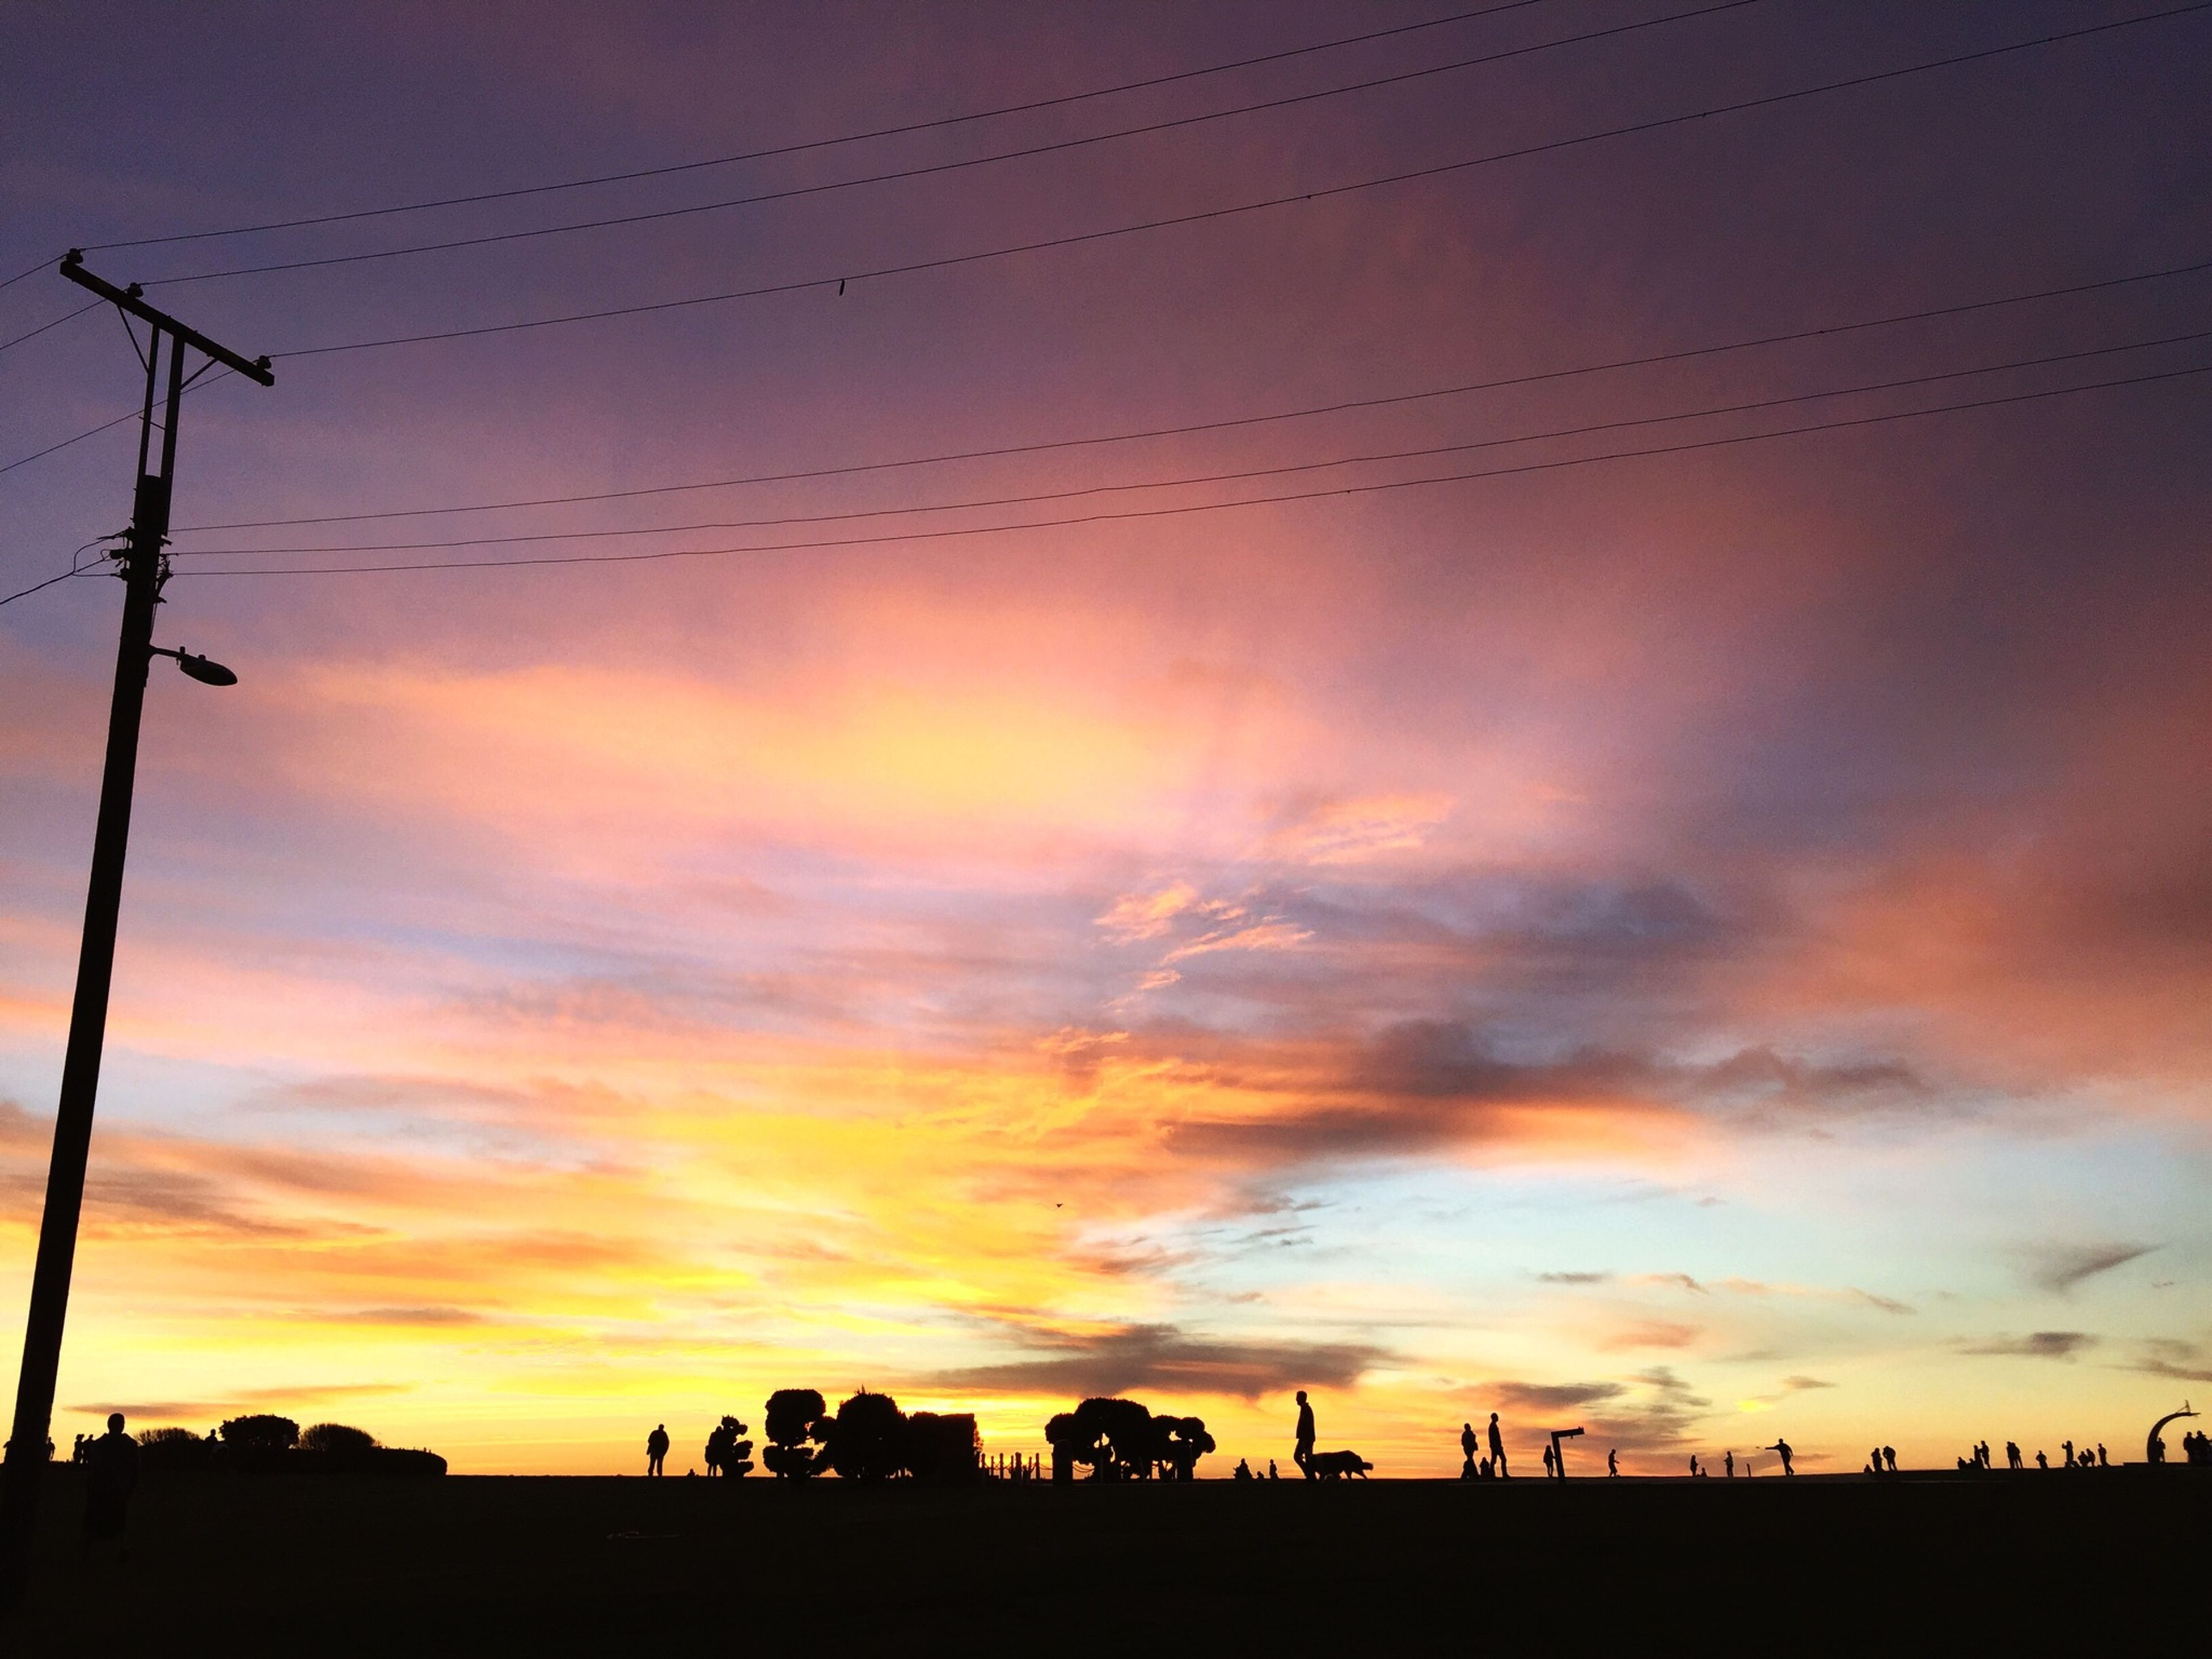 sunset, silhouette, sky, orange color, beauty in nature, scenics, cloud - sky, low angle view, tranquility, nature, tranquil scene, power line, electricity pylon, dramatic sky, idyllic, cloud, street light, dusk, outline, outdoors